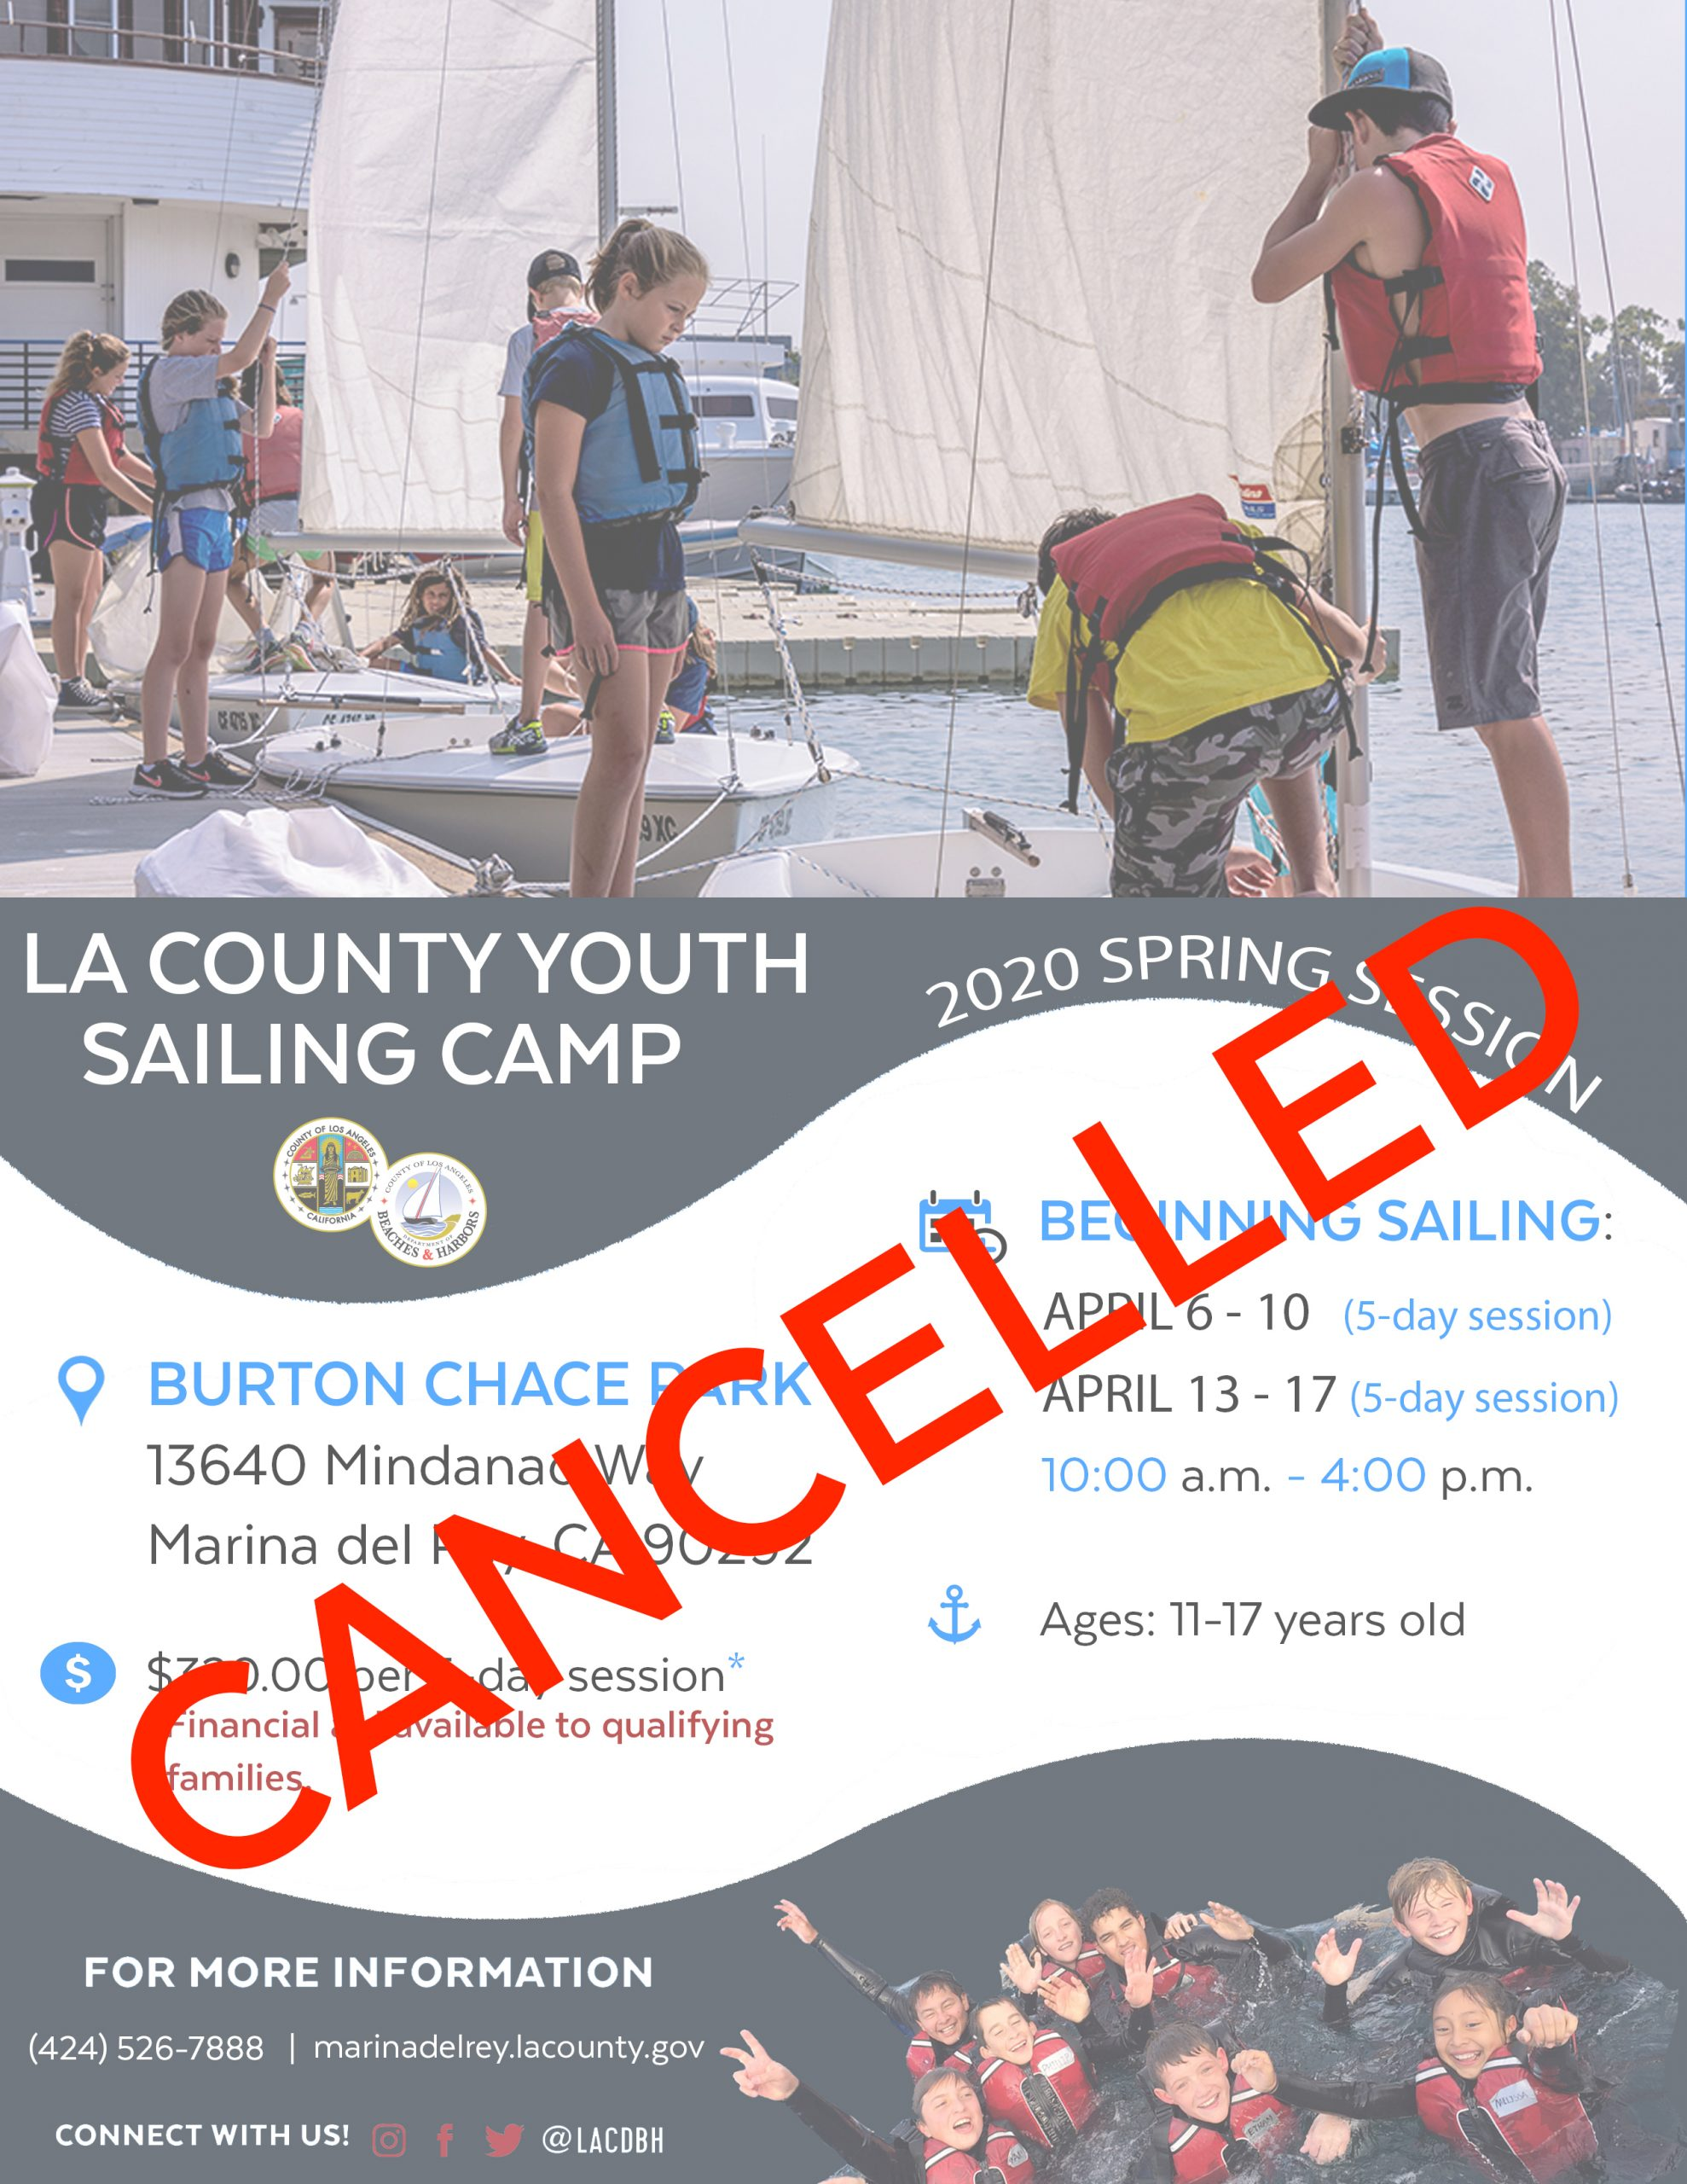 2020 Spring Youth Sailing Camp CANCELLED